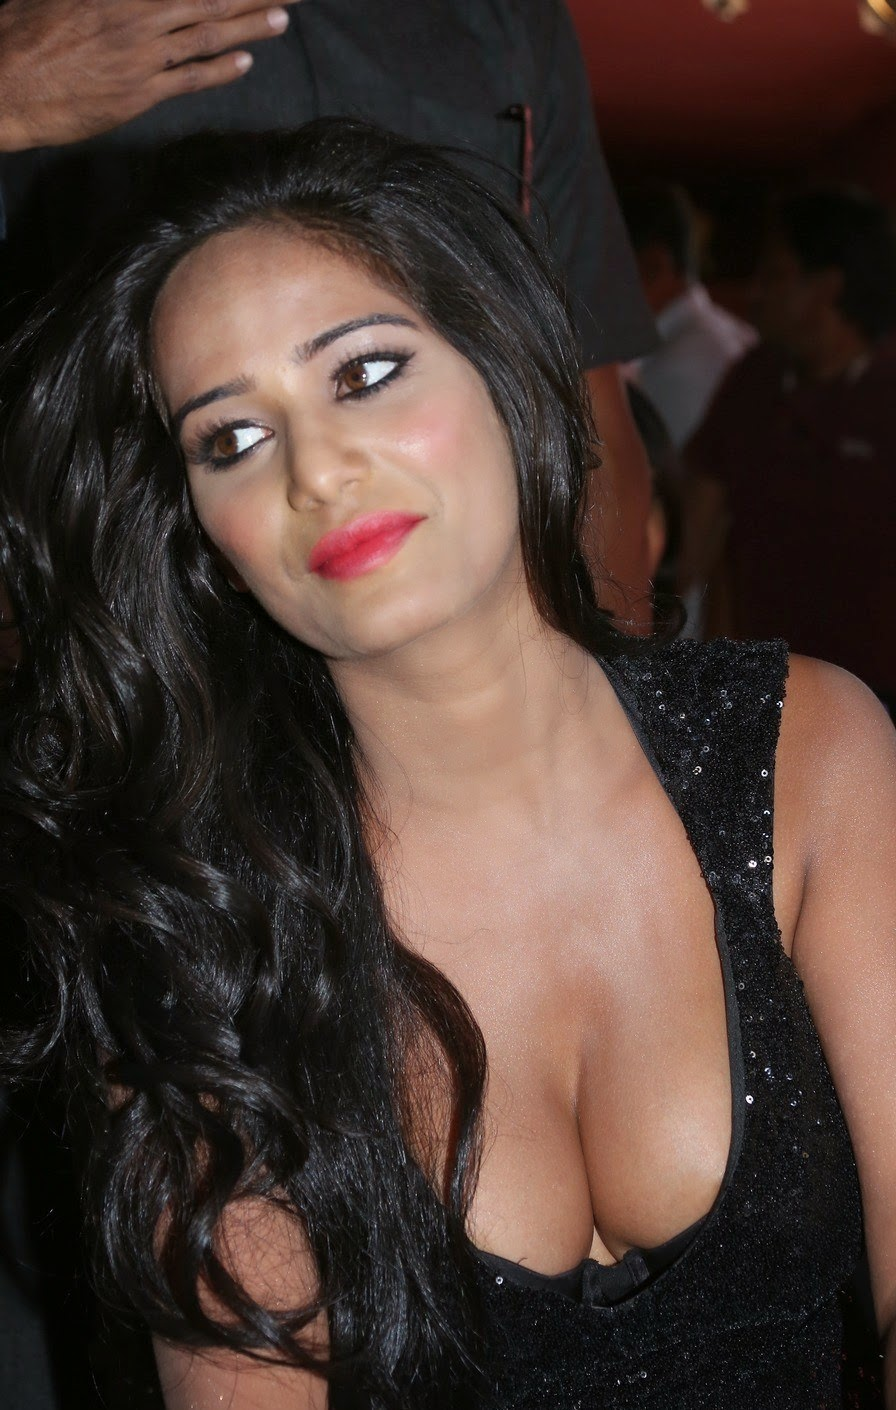 deep cleavage of actress